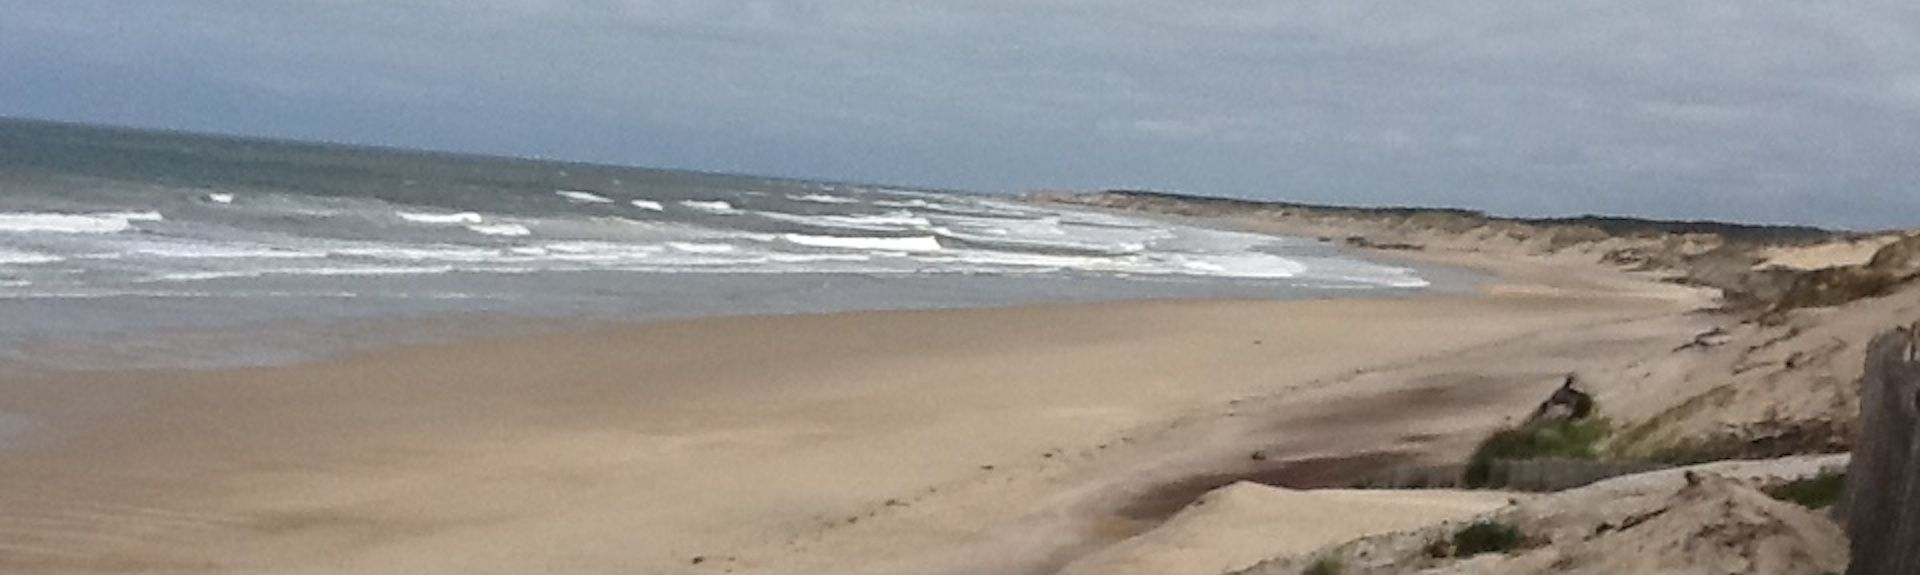 Hourtin Beach, Hourtin, Nouvelle-Aquitaine, France